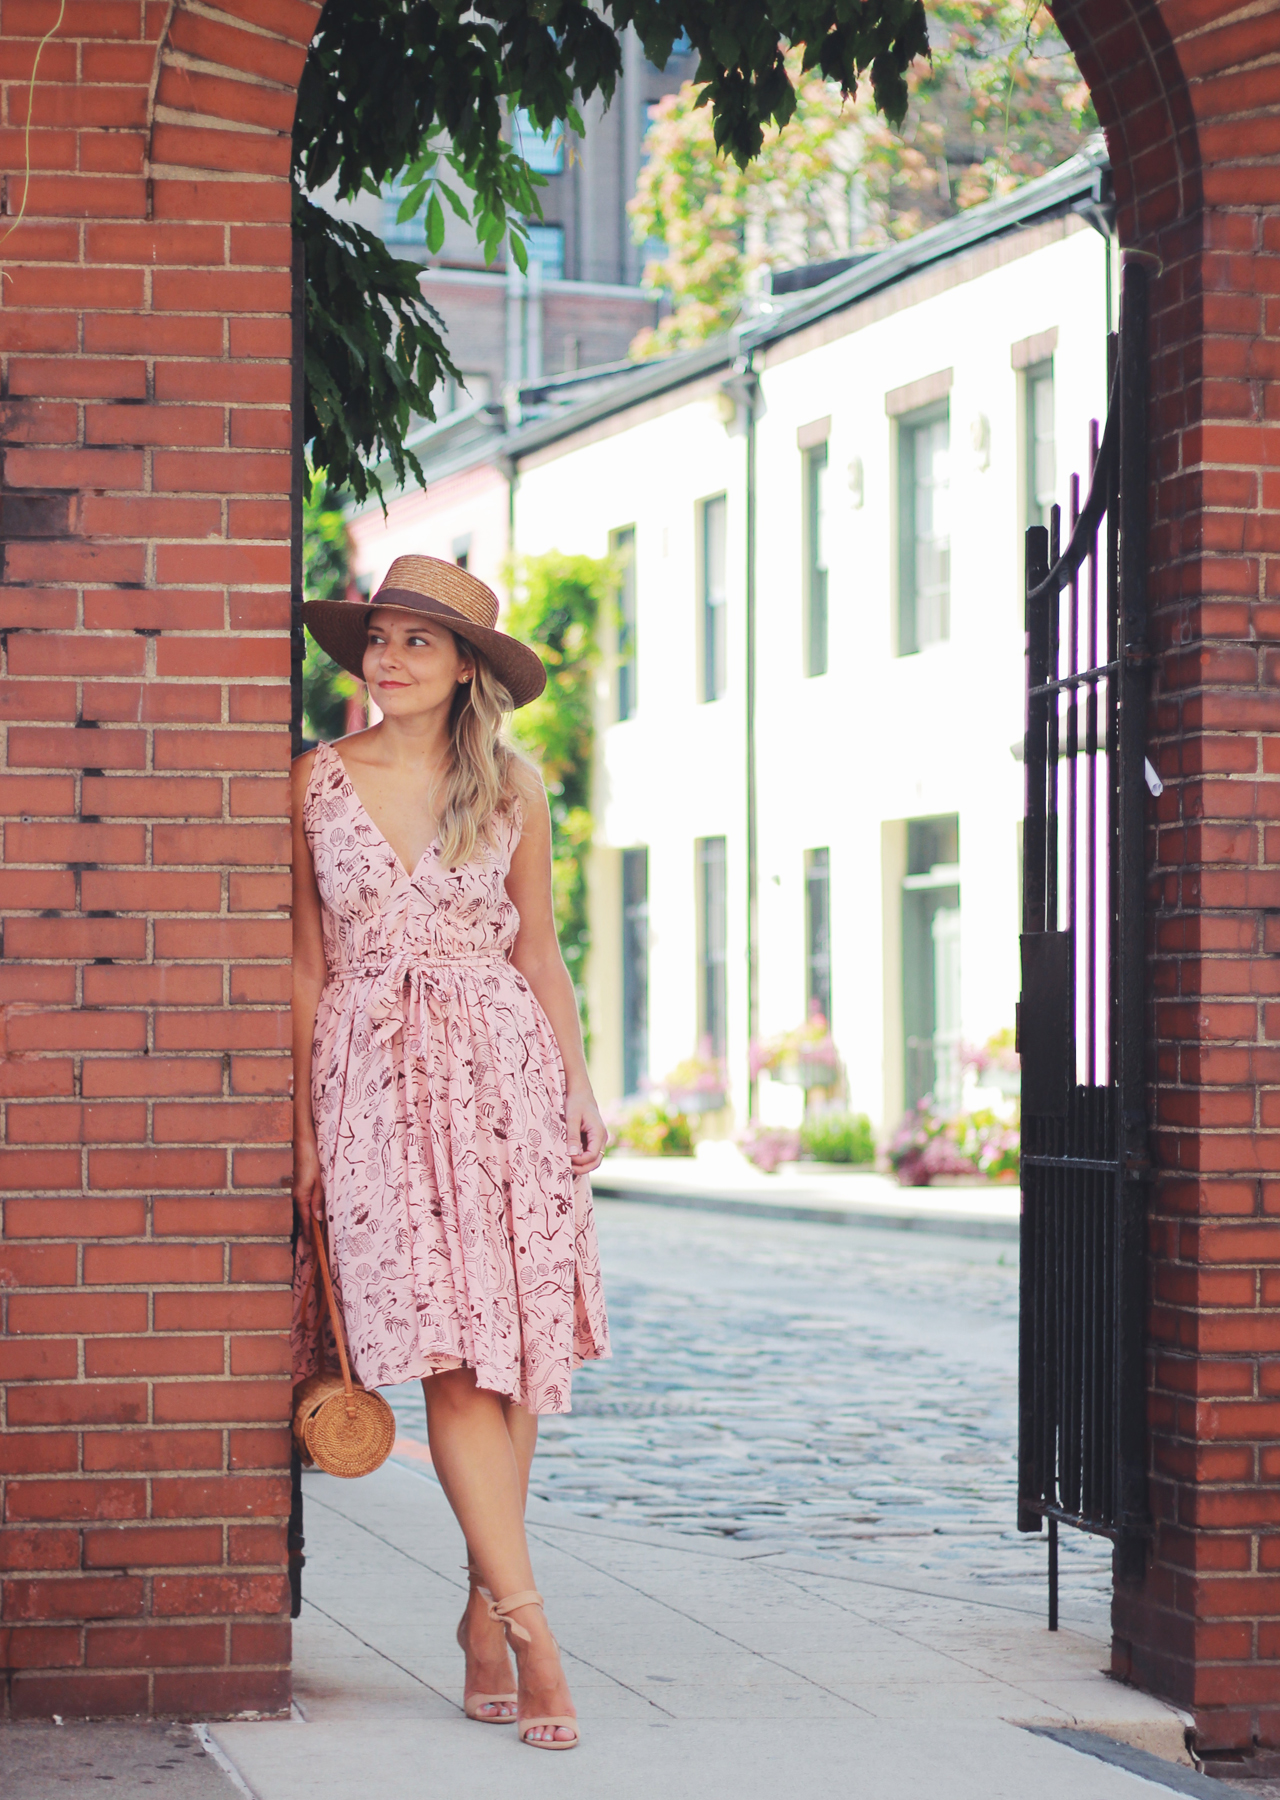 The Steele Maiden: Summer Staycation Style